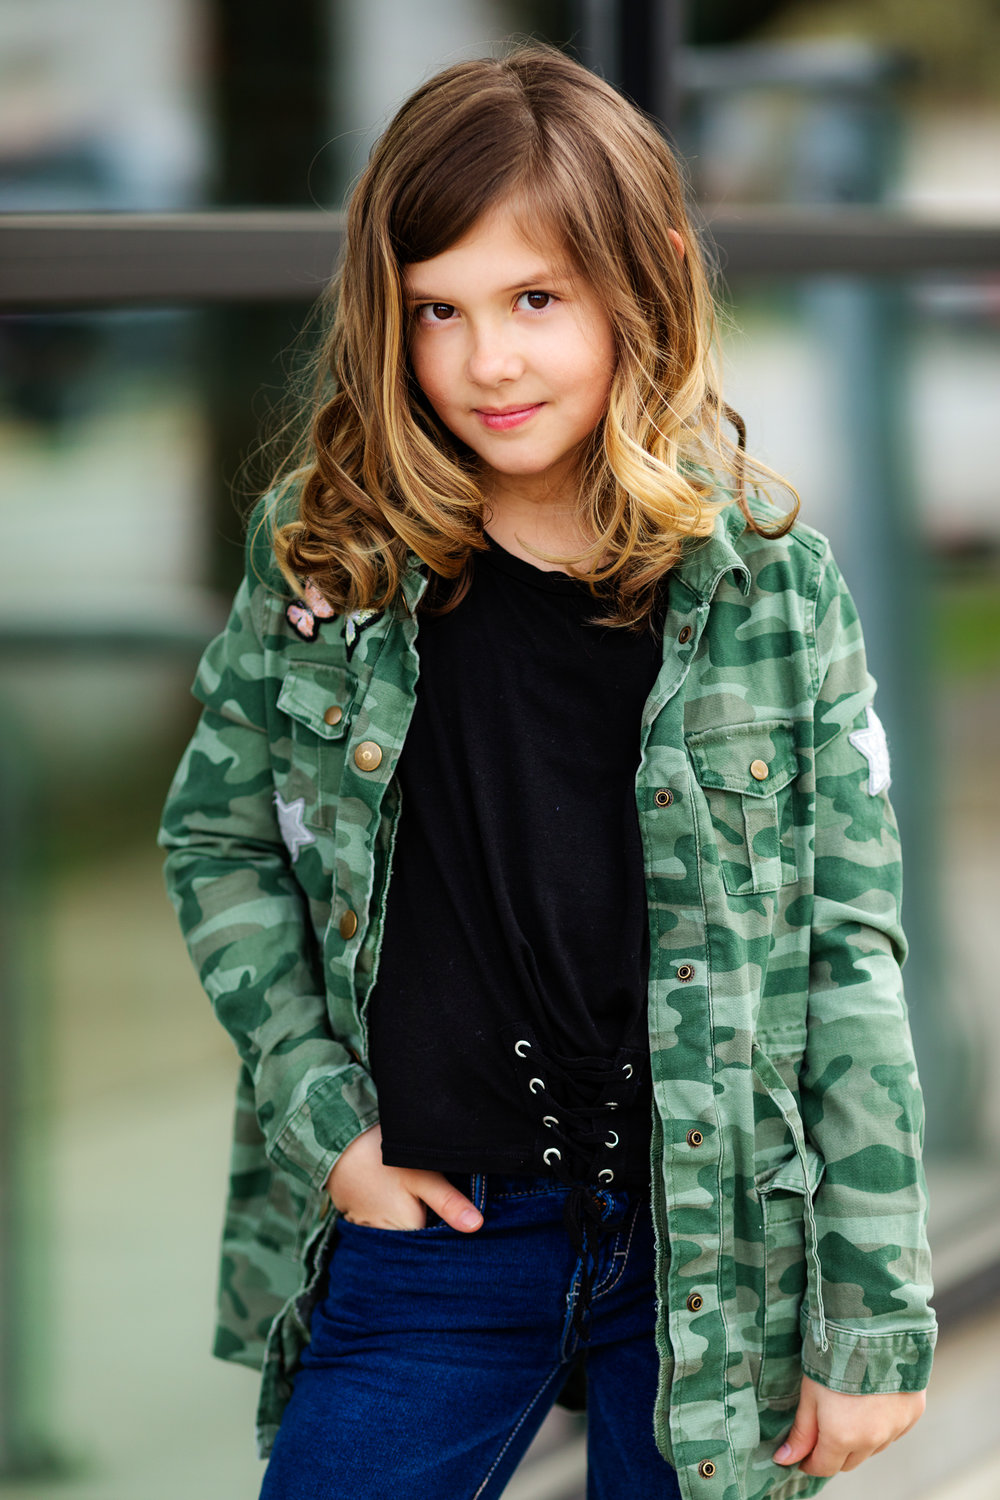 ariellanoellephotography-seattle-area-children-headshots-child-portraiture-actor-model-bellevue-kirkland-redmond-1-5.jpg